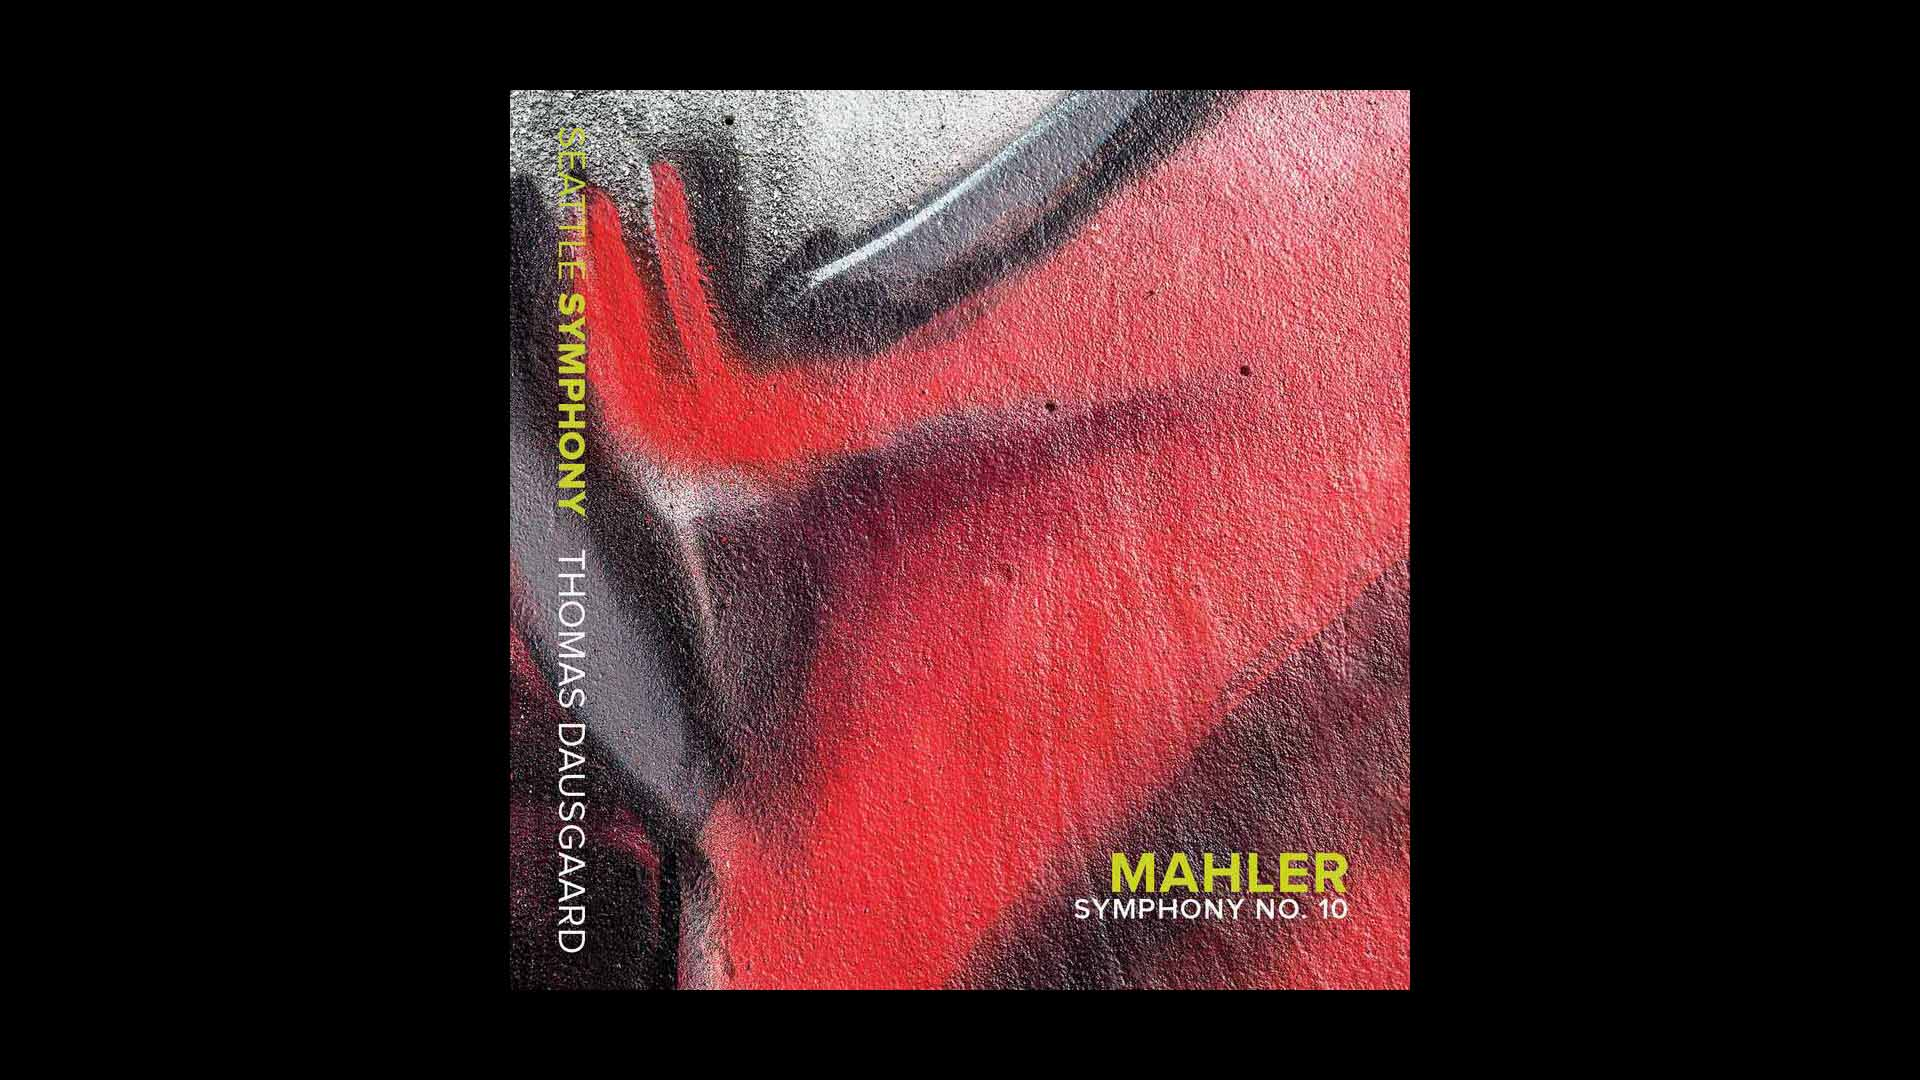 """""""Seattle and Dausgaard are a New Power Centre in American Musical Life."""" – Read Information's Stellar Review of Mahler: Symphony No. 10"""